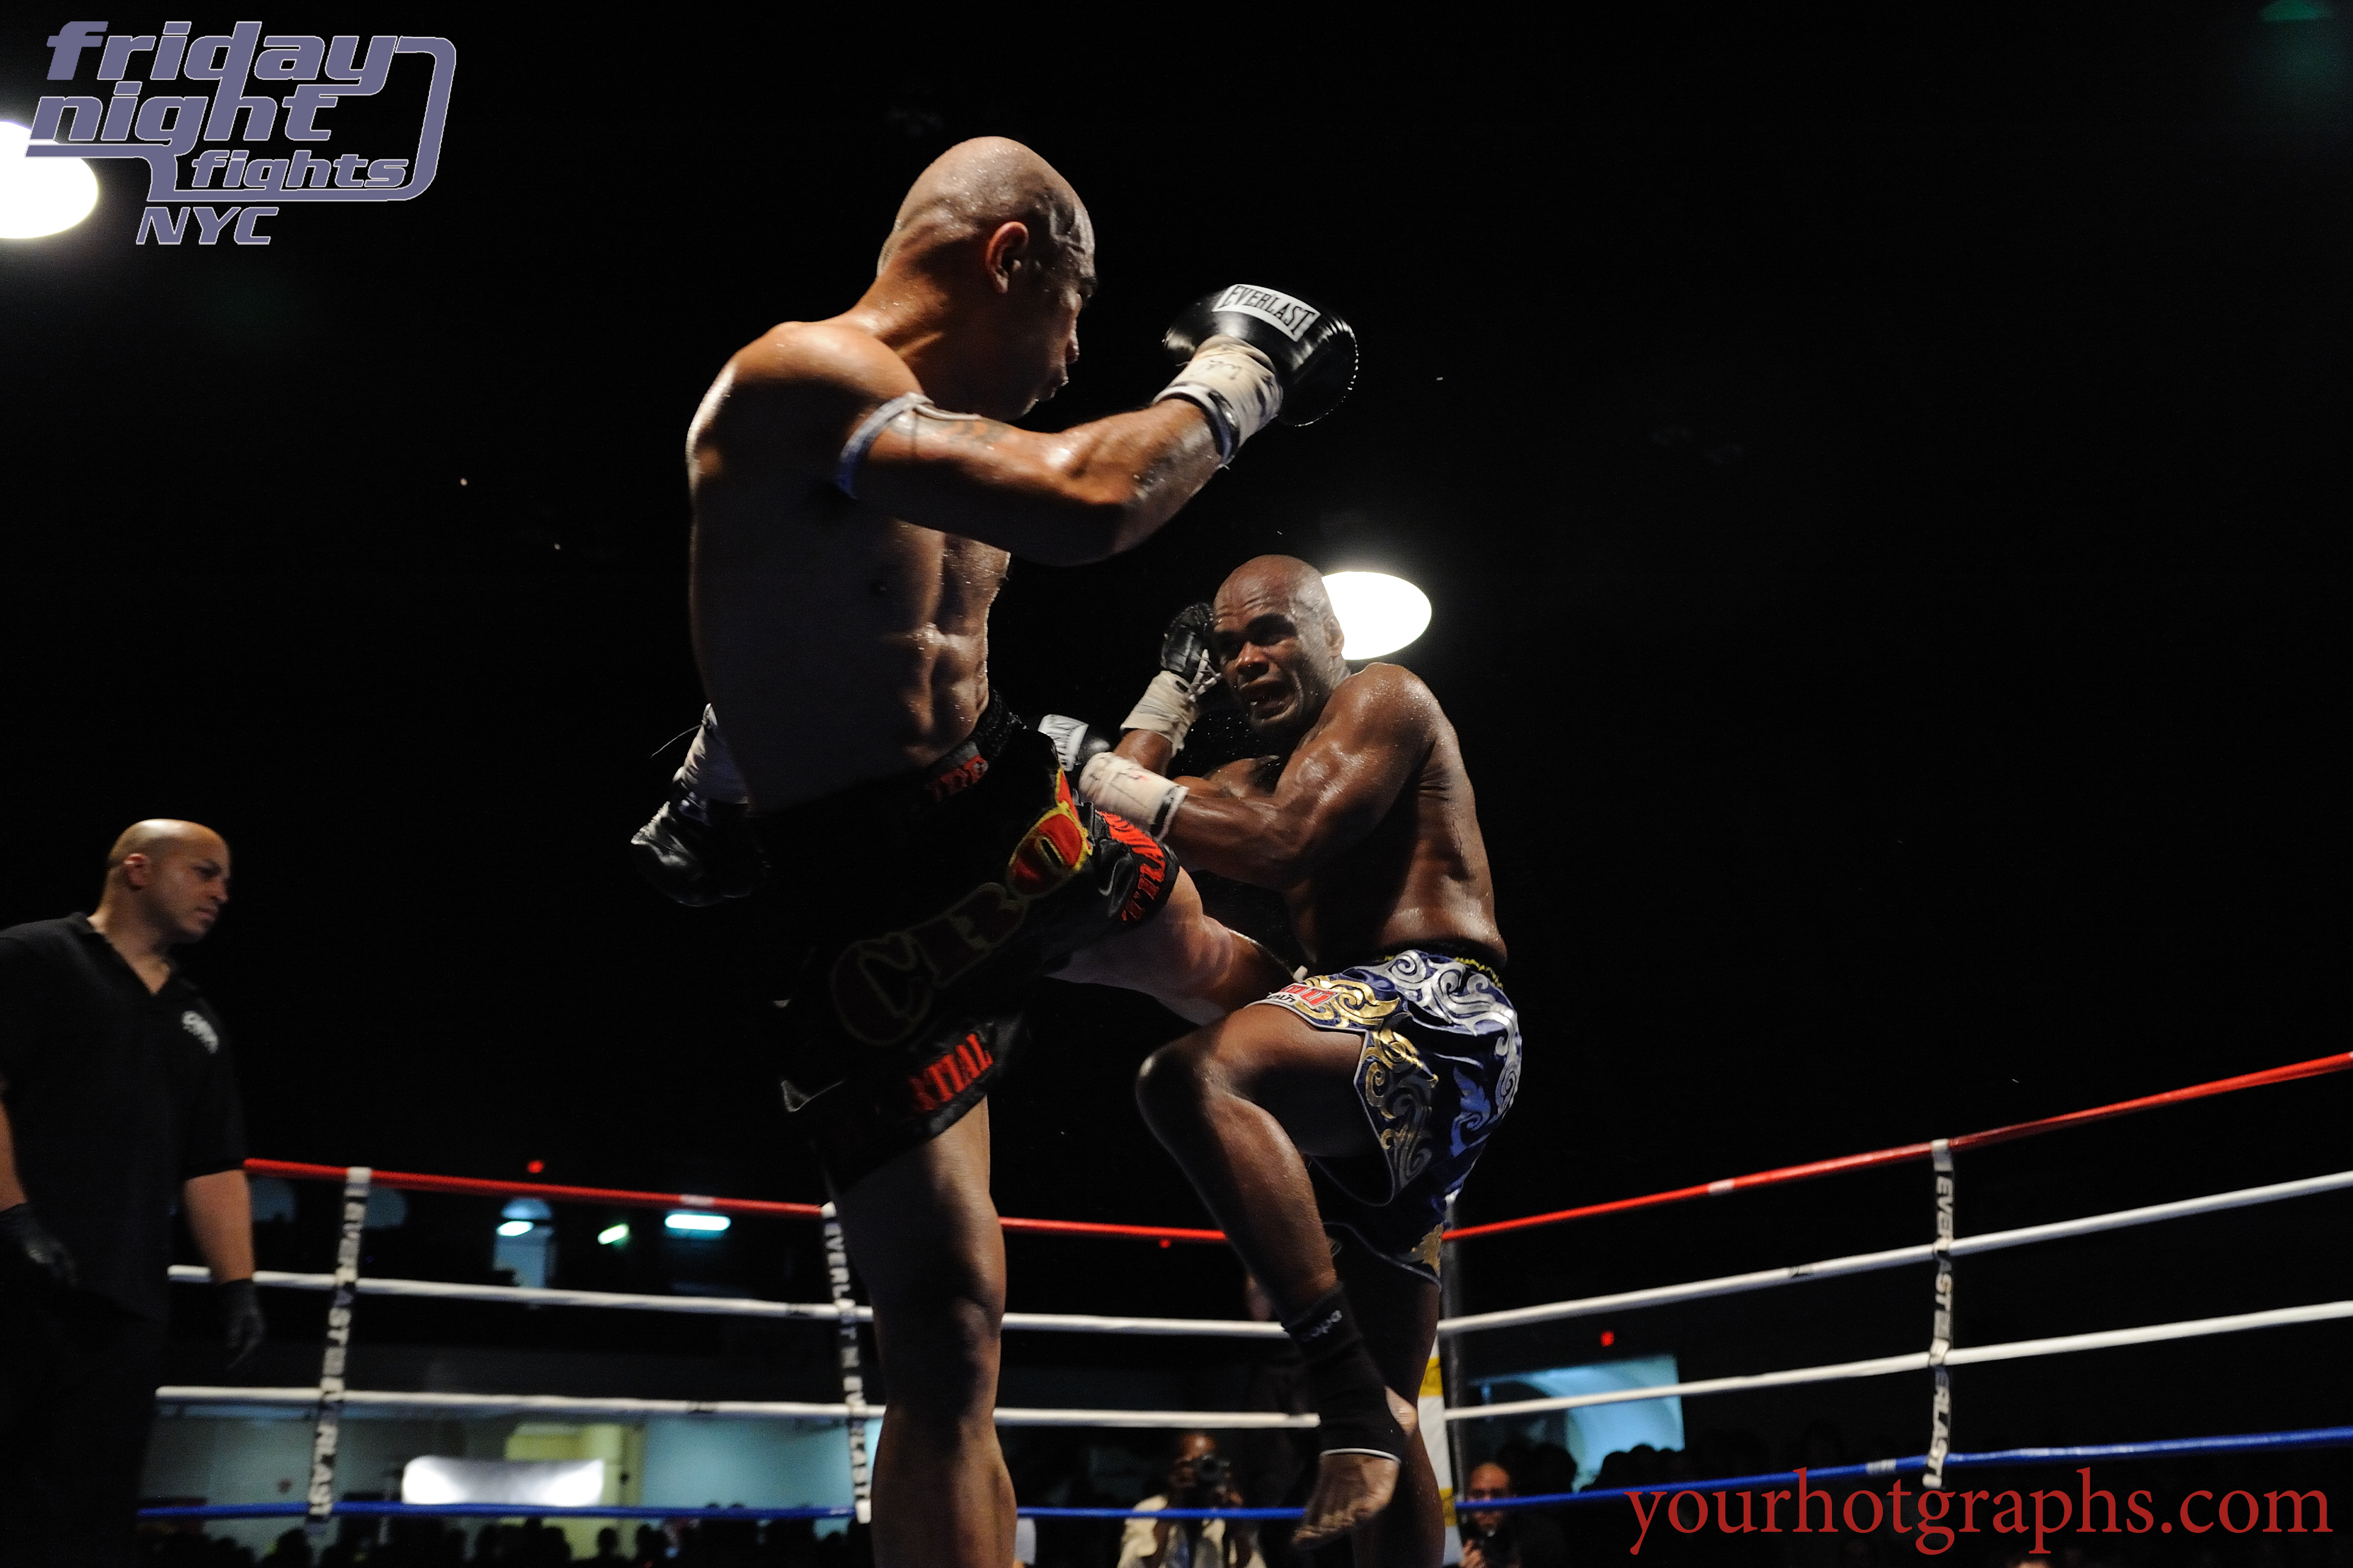 Chris Romulo vs. Sean Hinds at Church Street Boxing Gym's Friday Night Fights Series in NYC